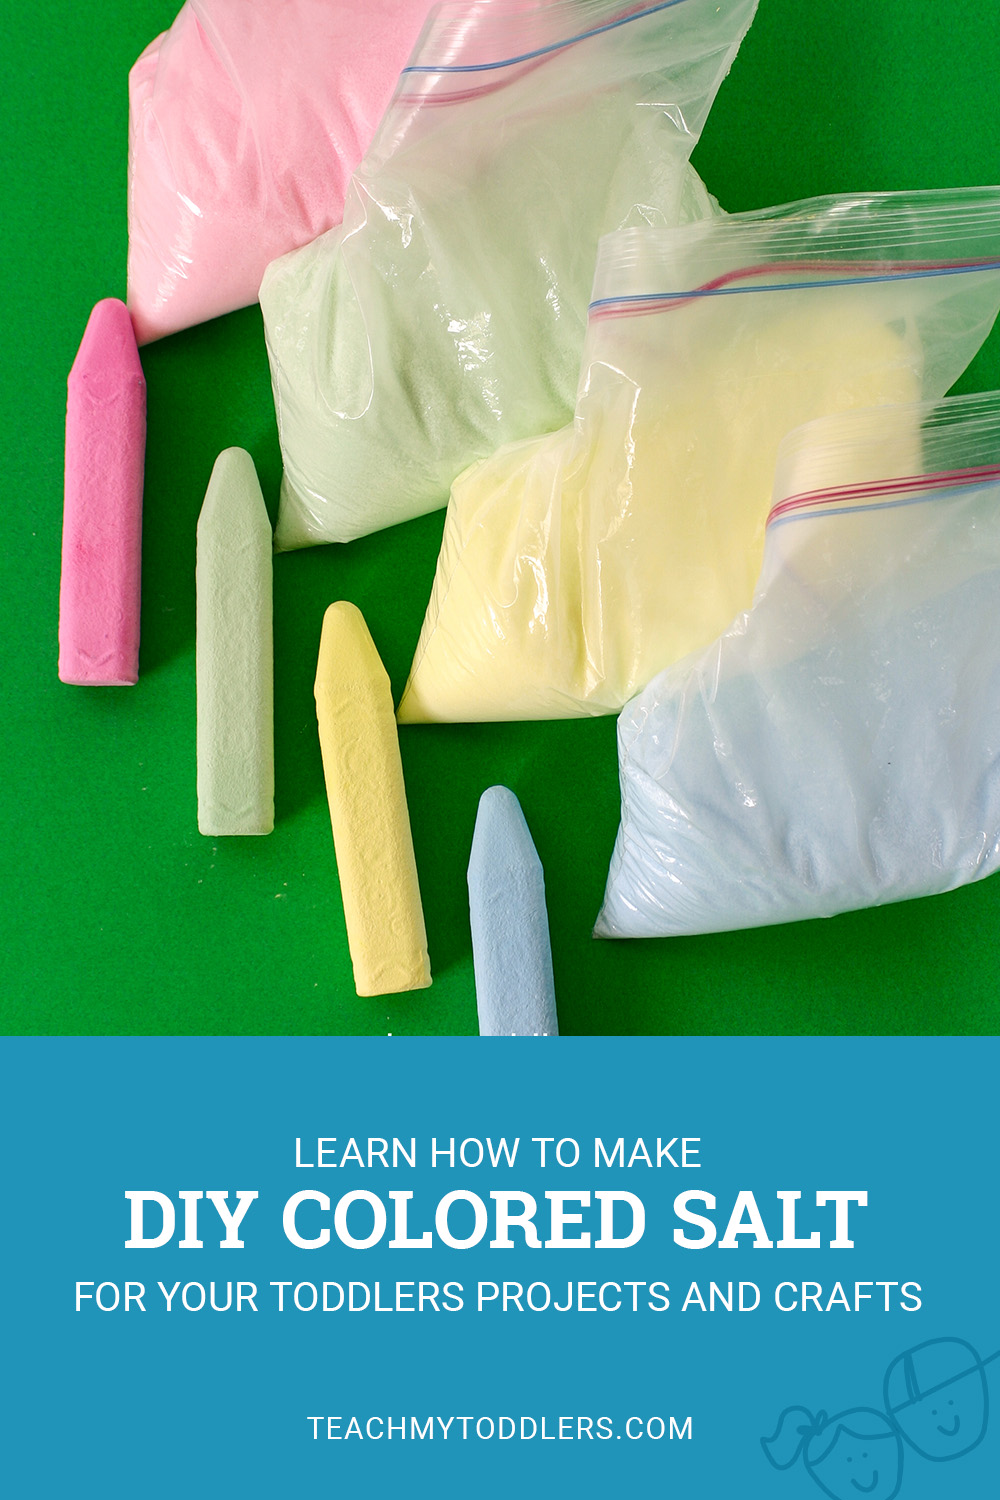 Learn how to make diy colored salt for teach my toddler projects